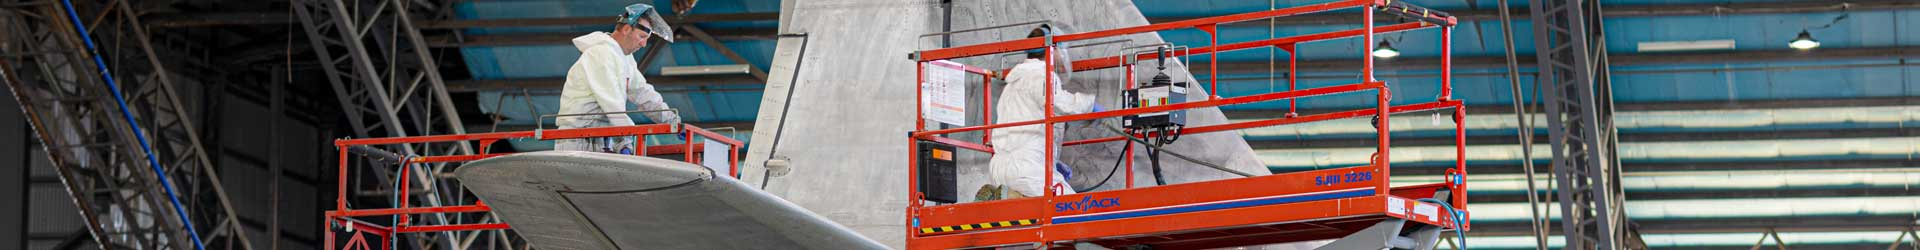 Aircraft refinishers on mobile scaffold painting an aircraft